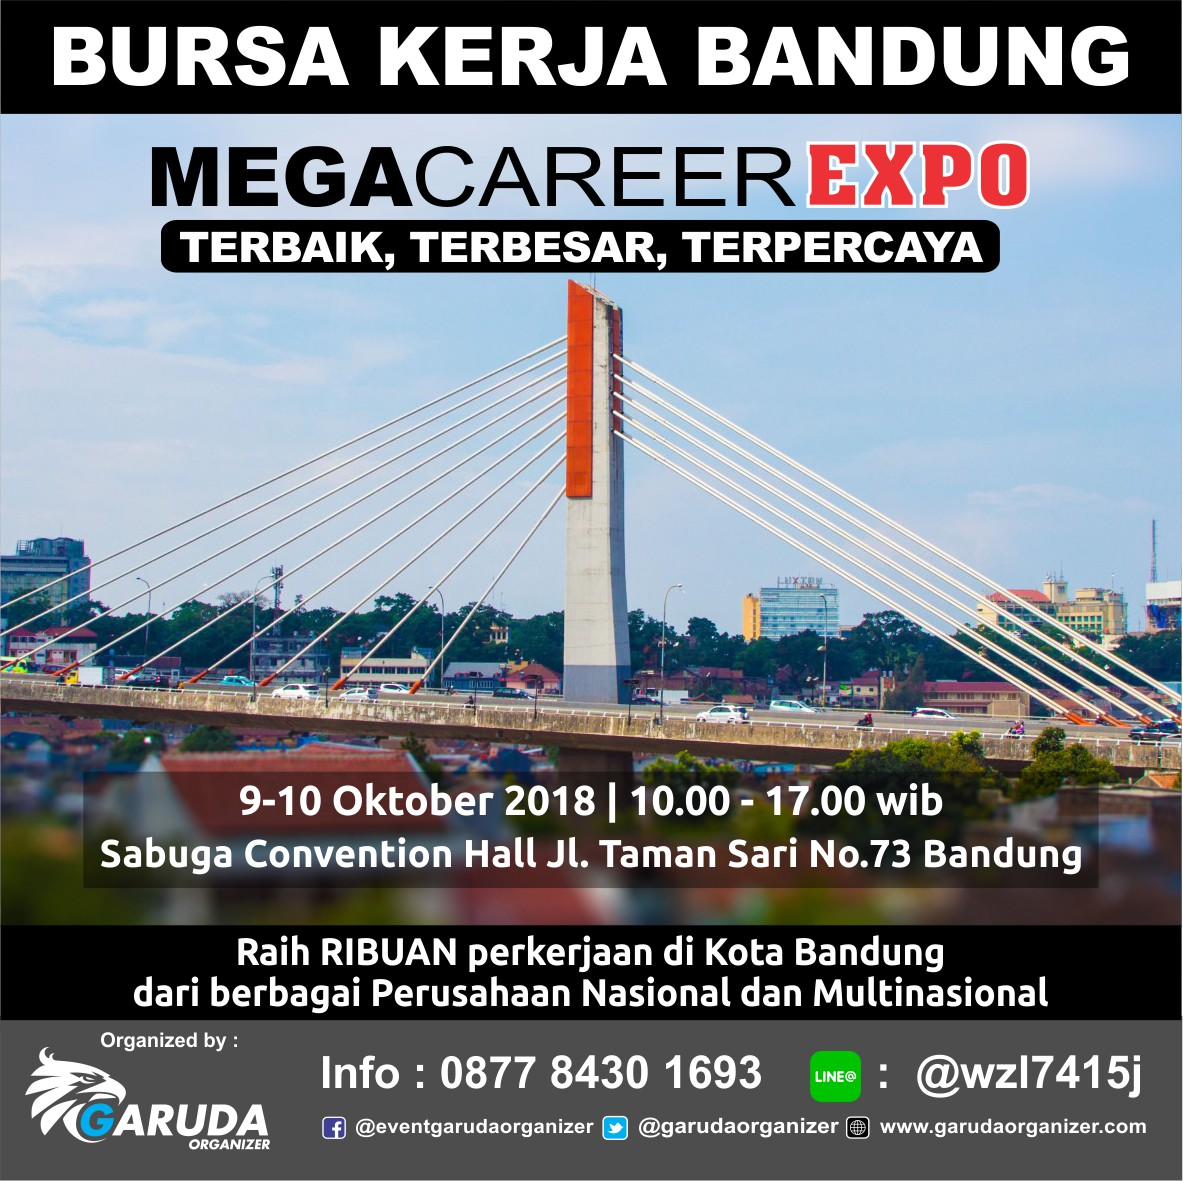 Mega Career Expo Bandung - Sabuga Convention Hall, 09-10 Oktober 2018